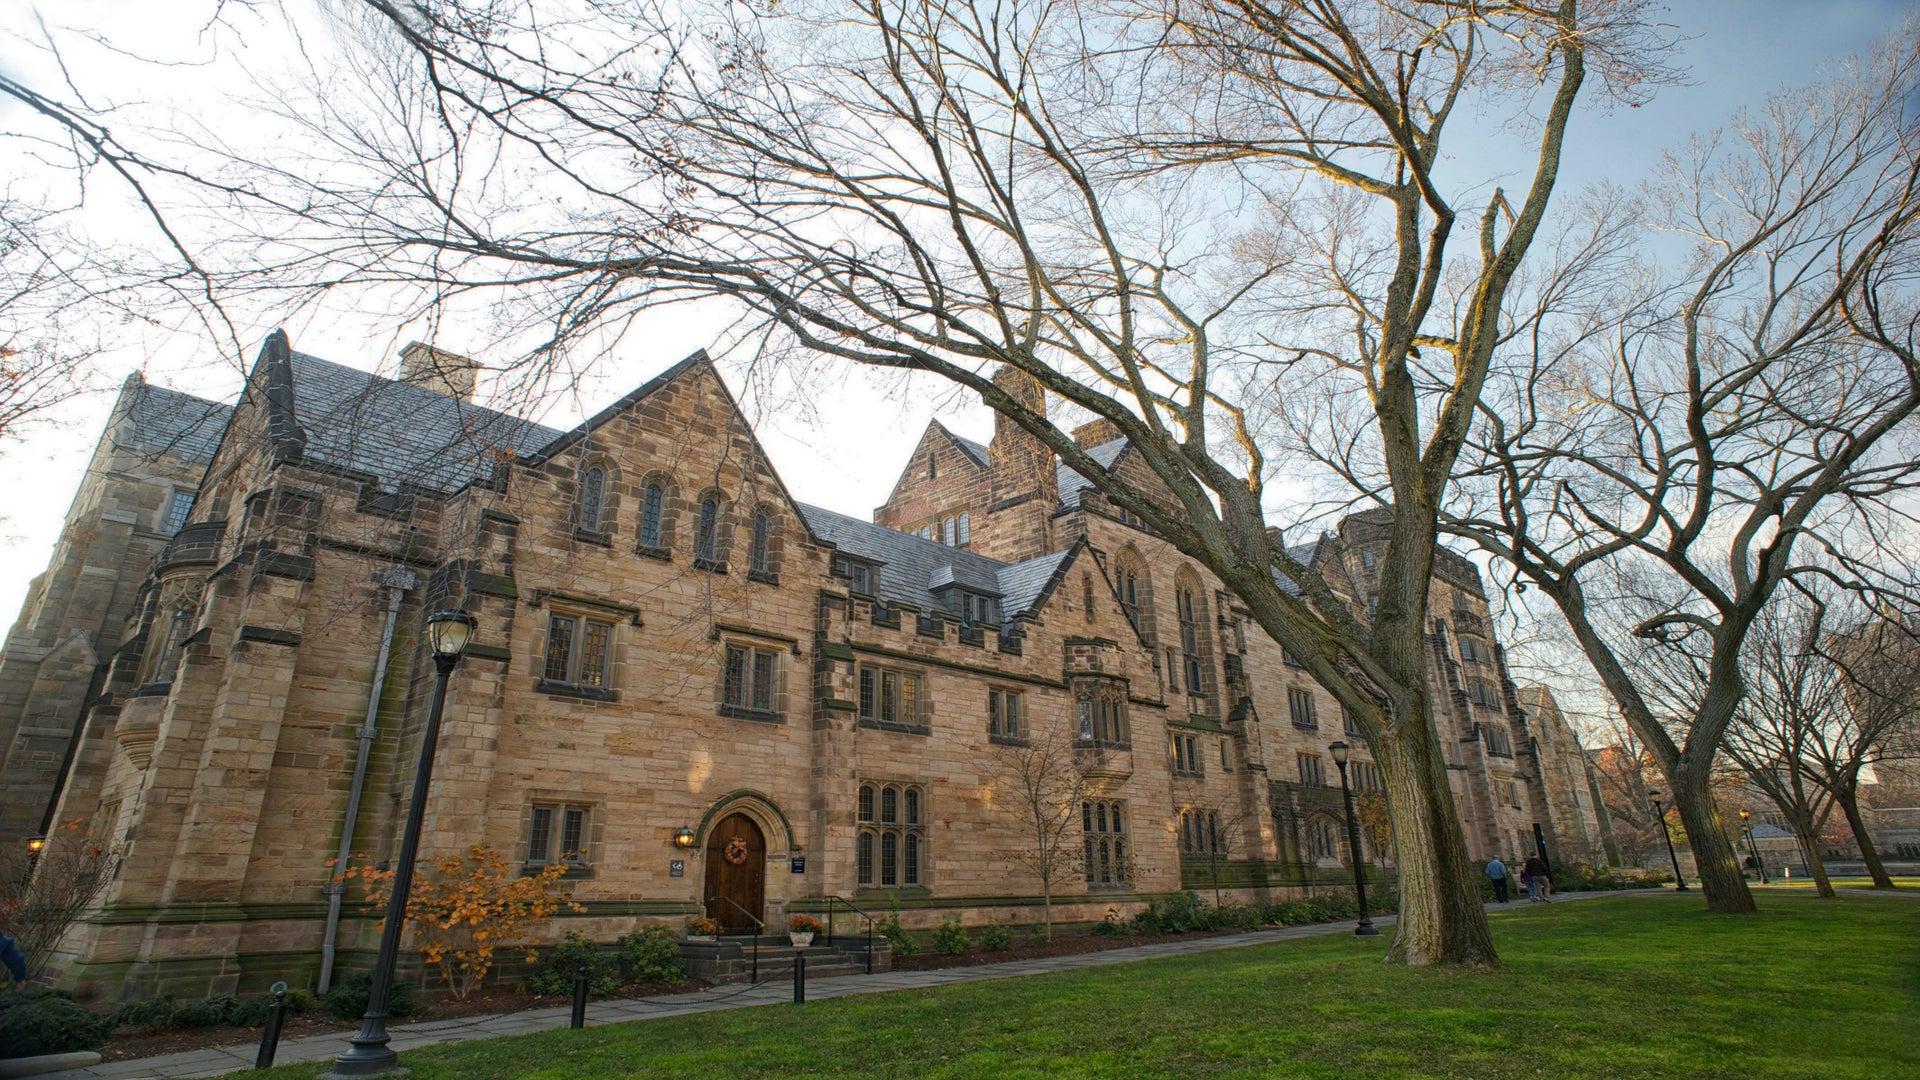 Yale Renames Calhoun College After Protests Over Connection To Slavery